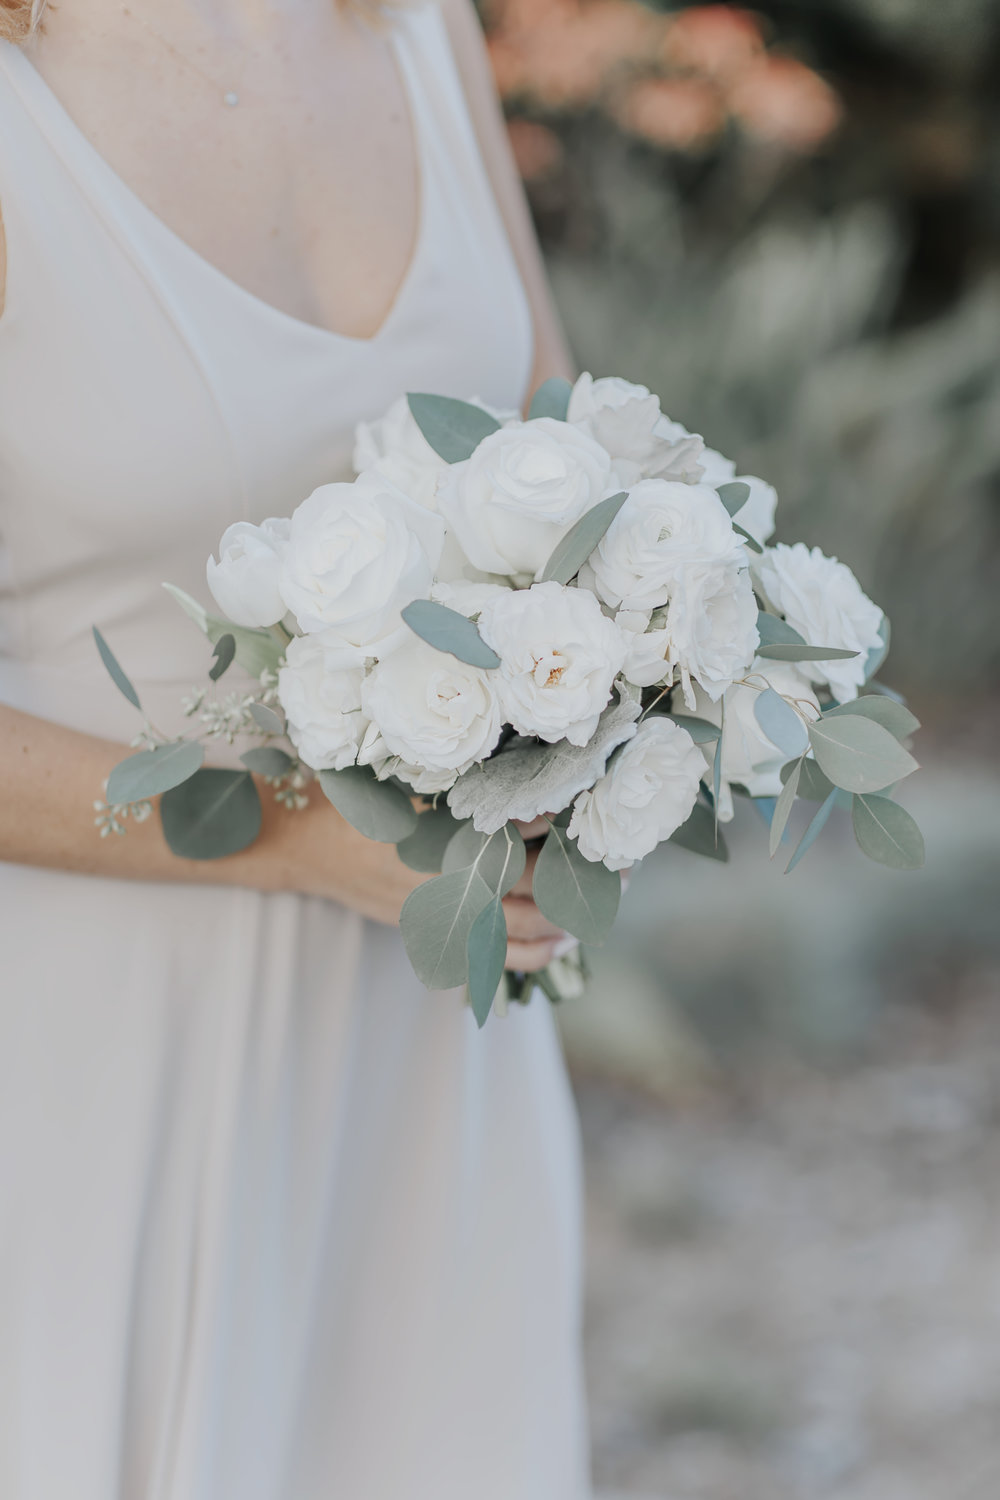 17 bridesmaid bouquet.jpg